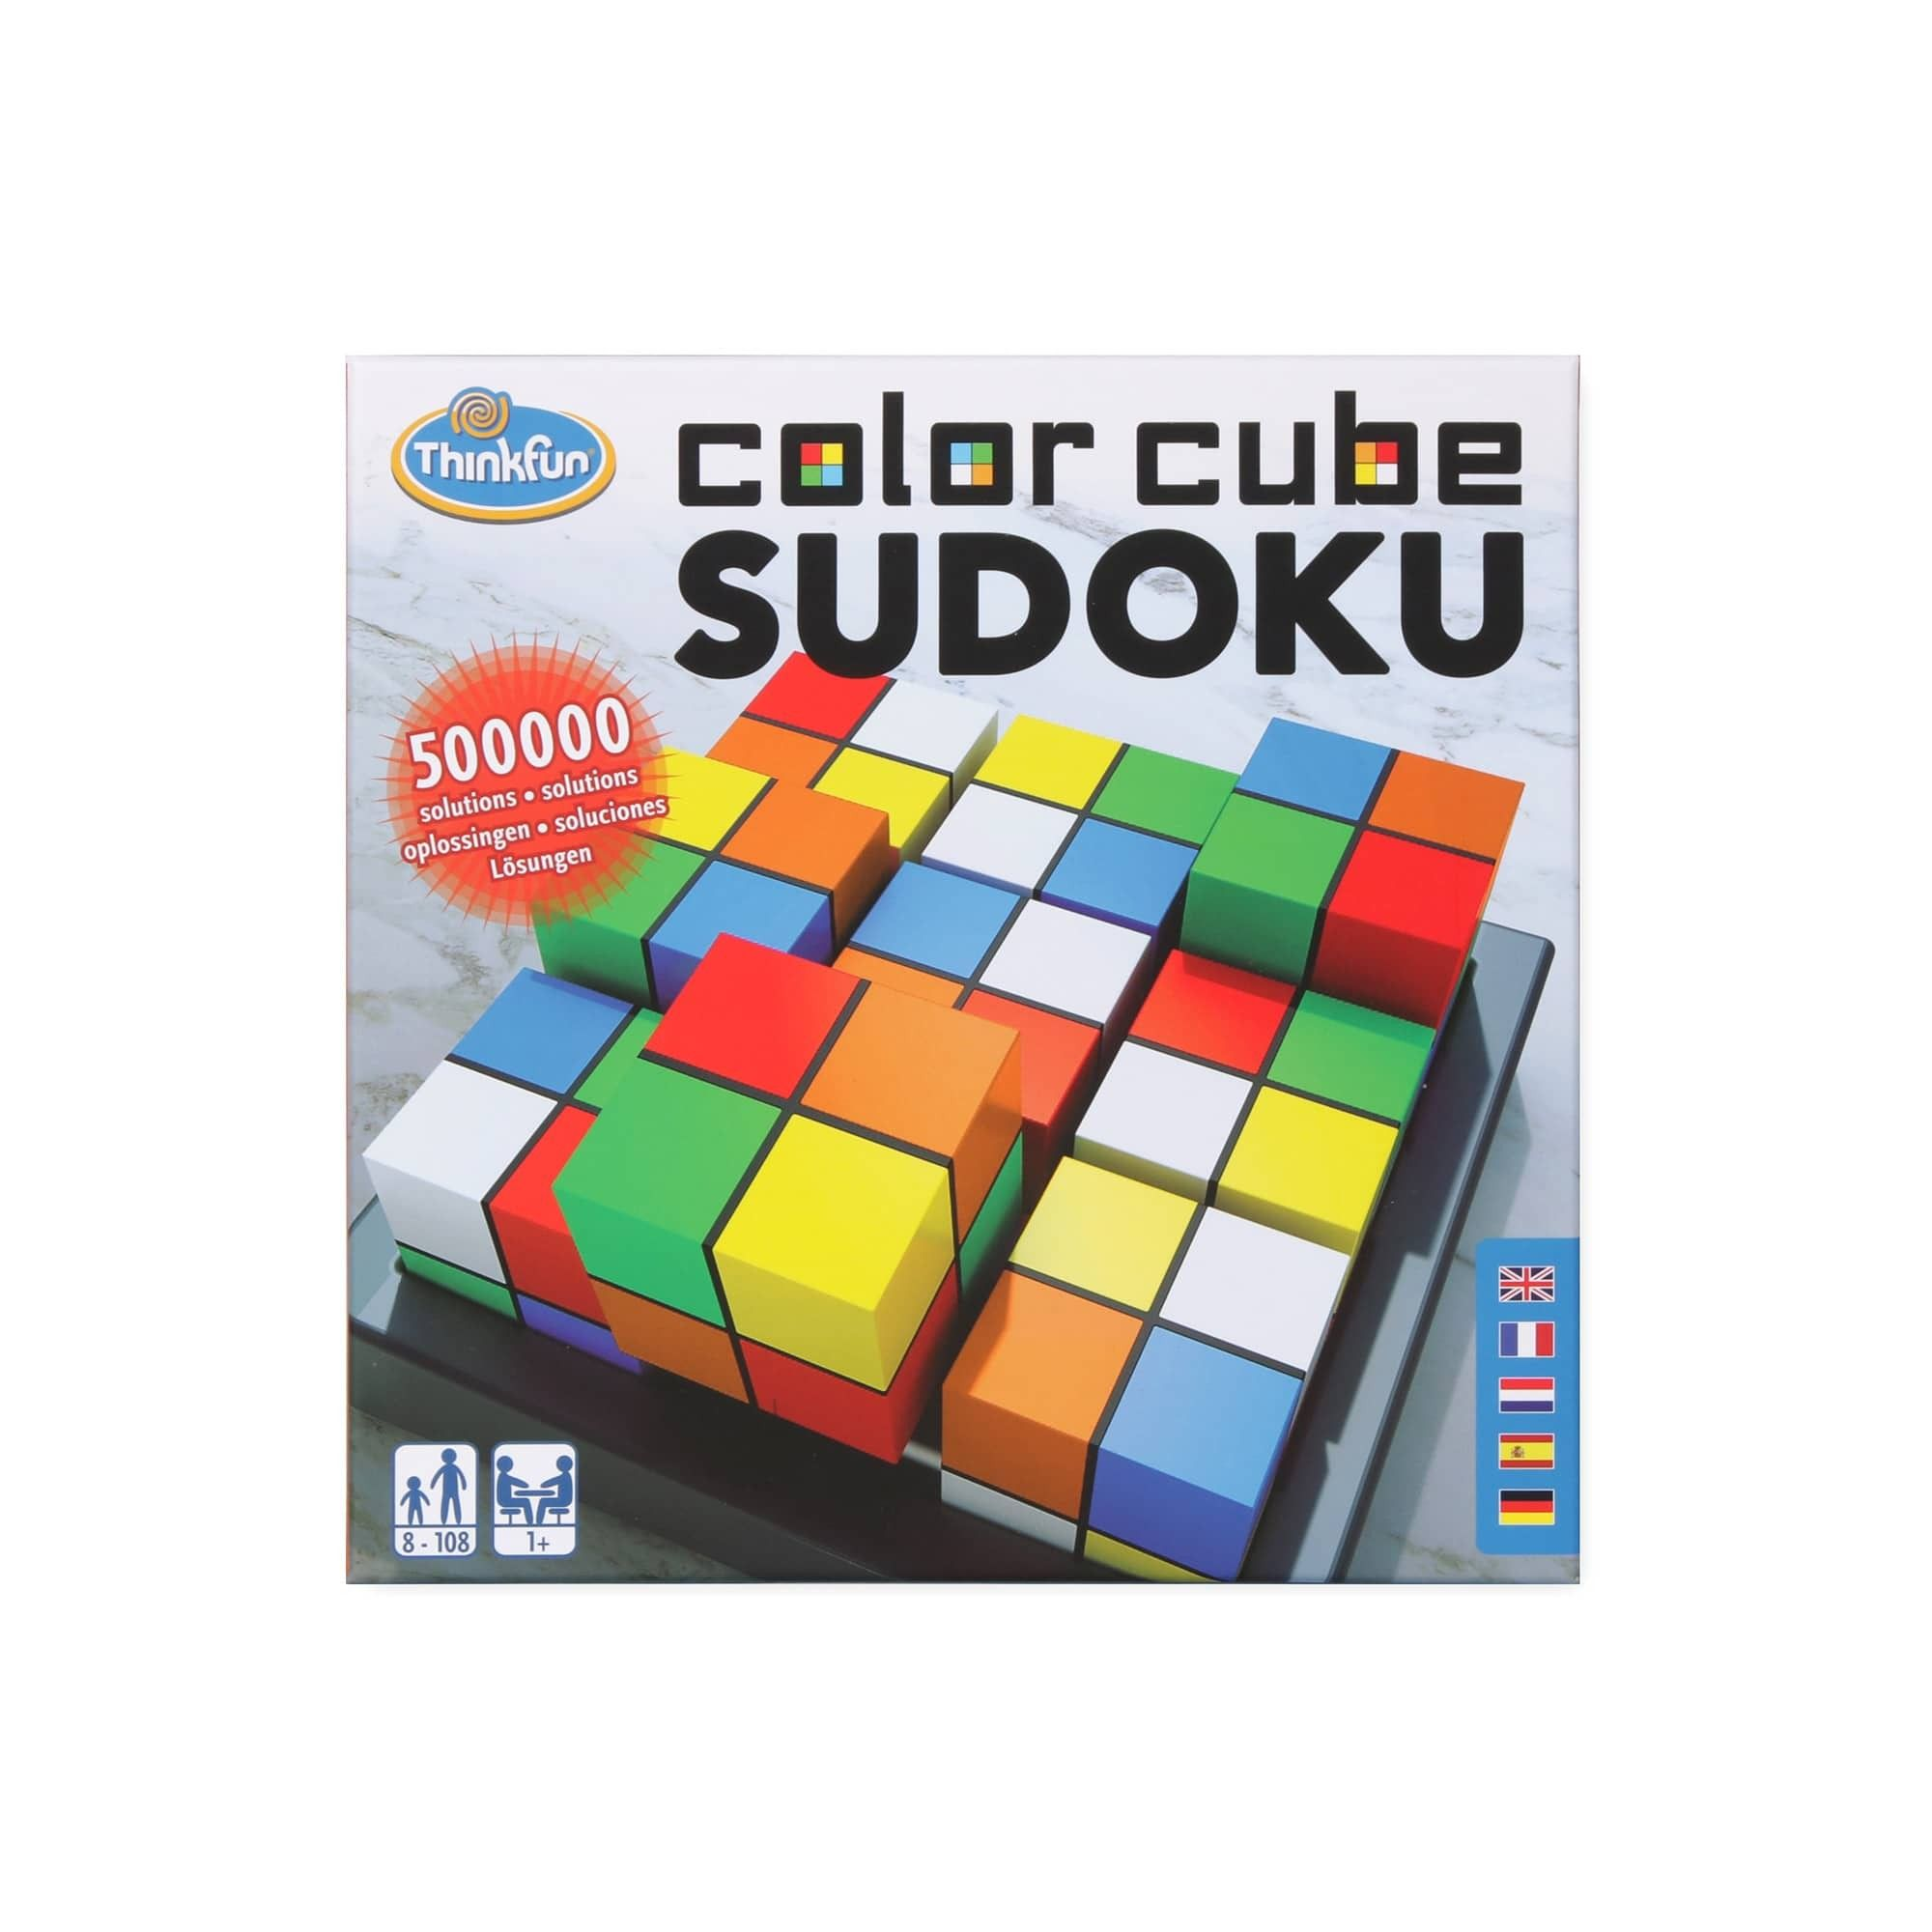 9 cubes coloured on all sides that can be flipped and